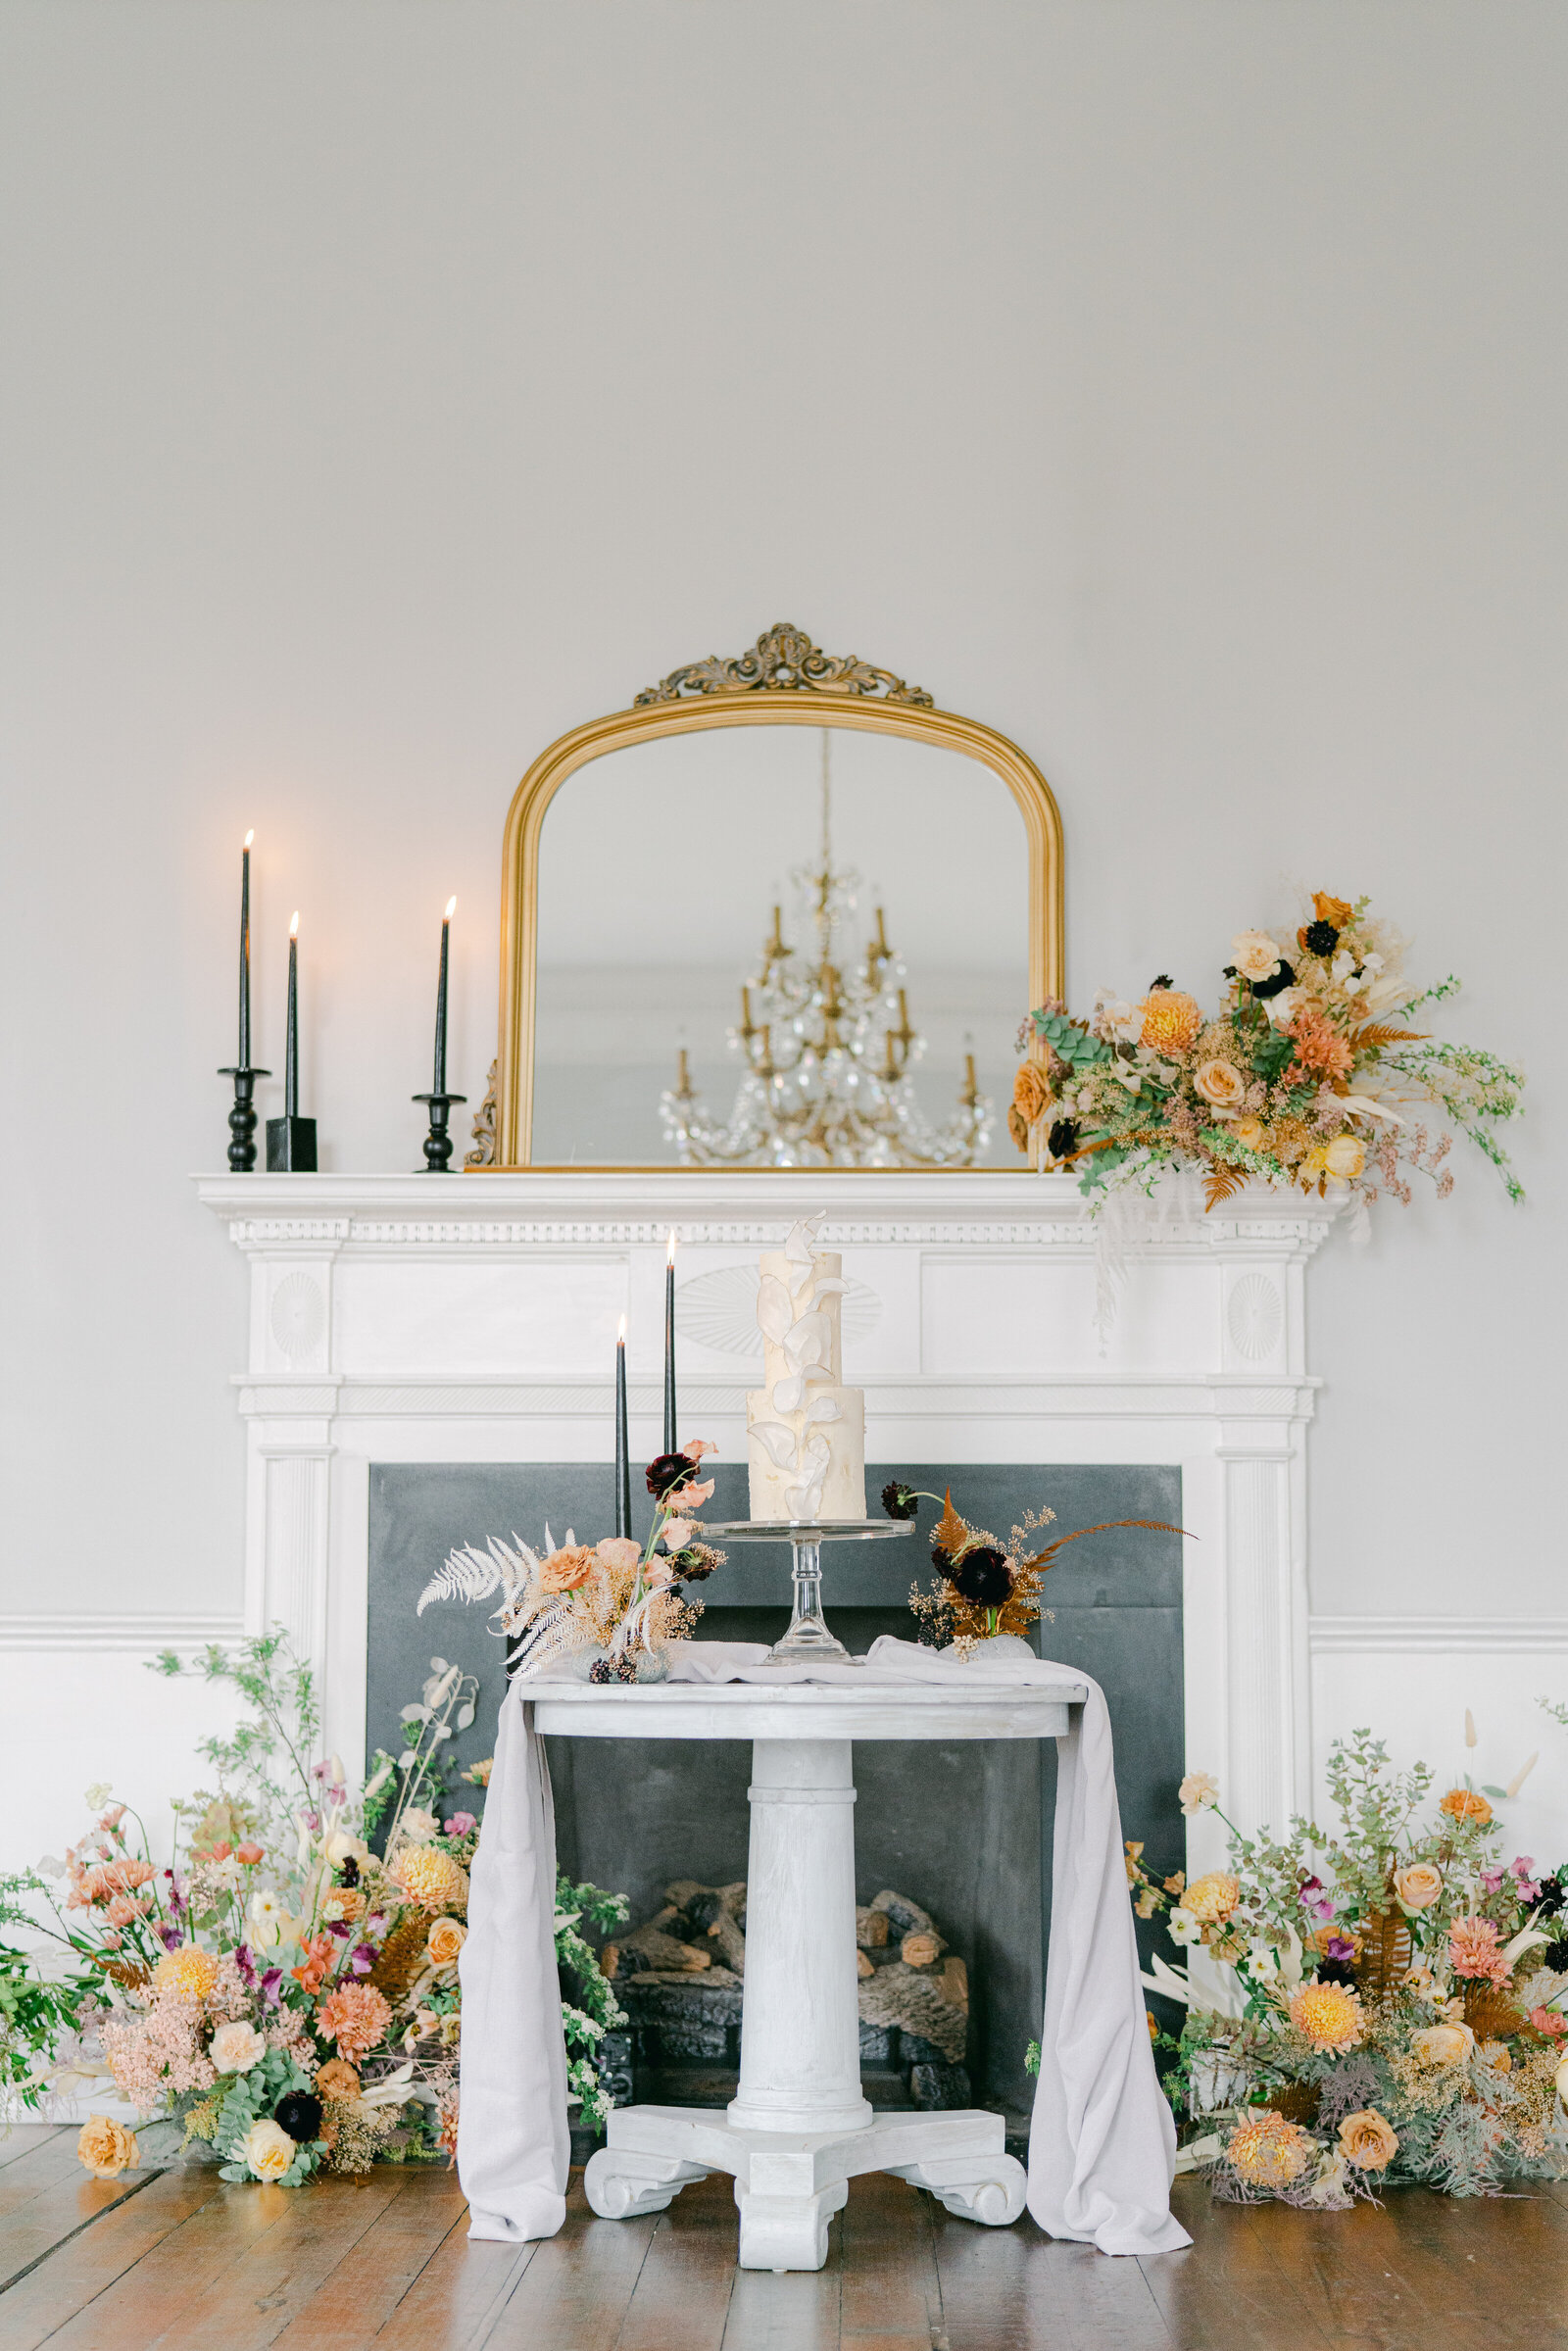 wedding cake on a stand in front of mantel with floral arrangements all around